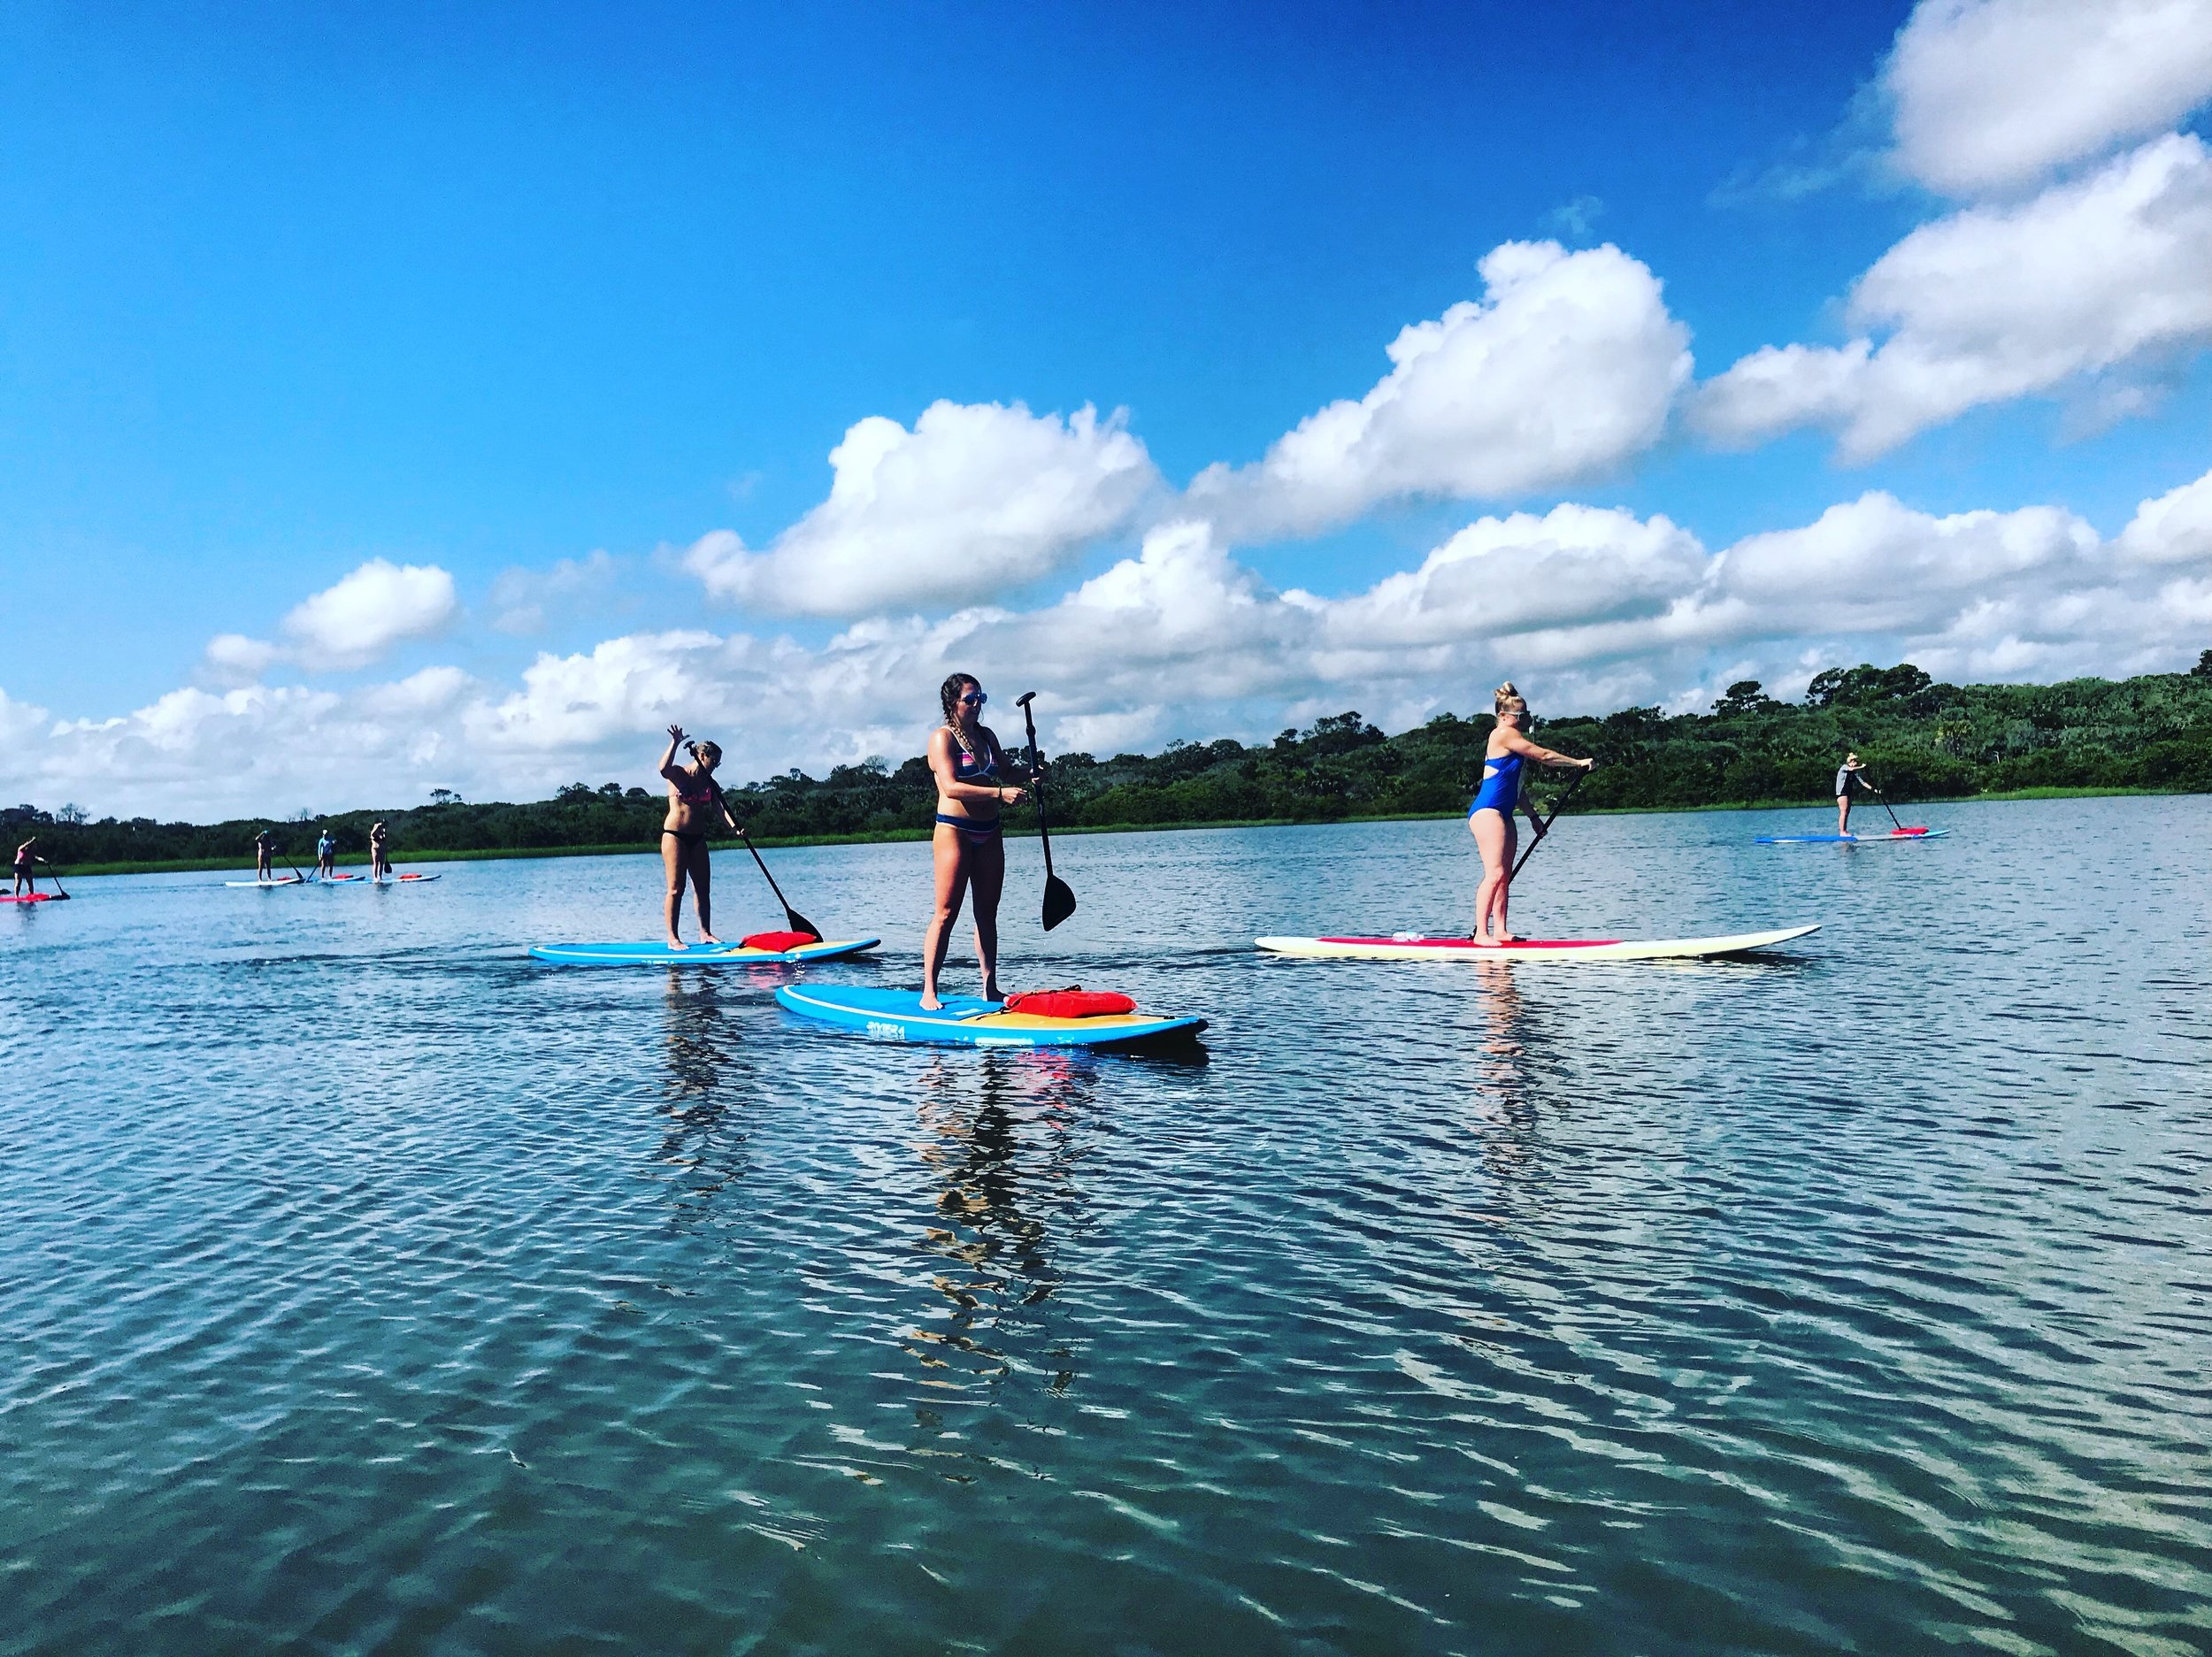 TRIPS INCLUDE - -90 minutes of fun-dry land lessons-board & paddle-life jacket-tons of fun!